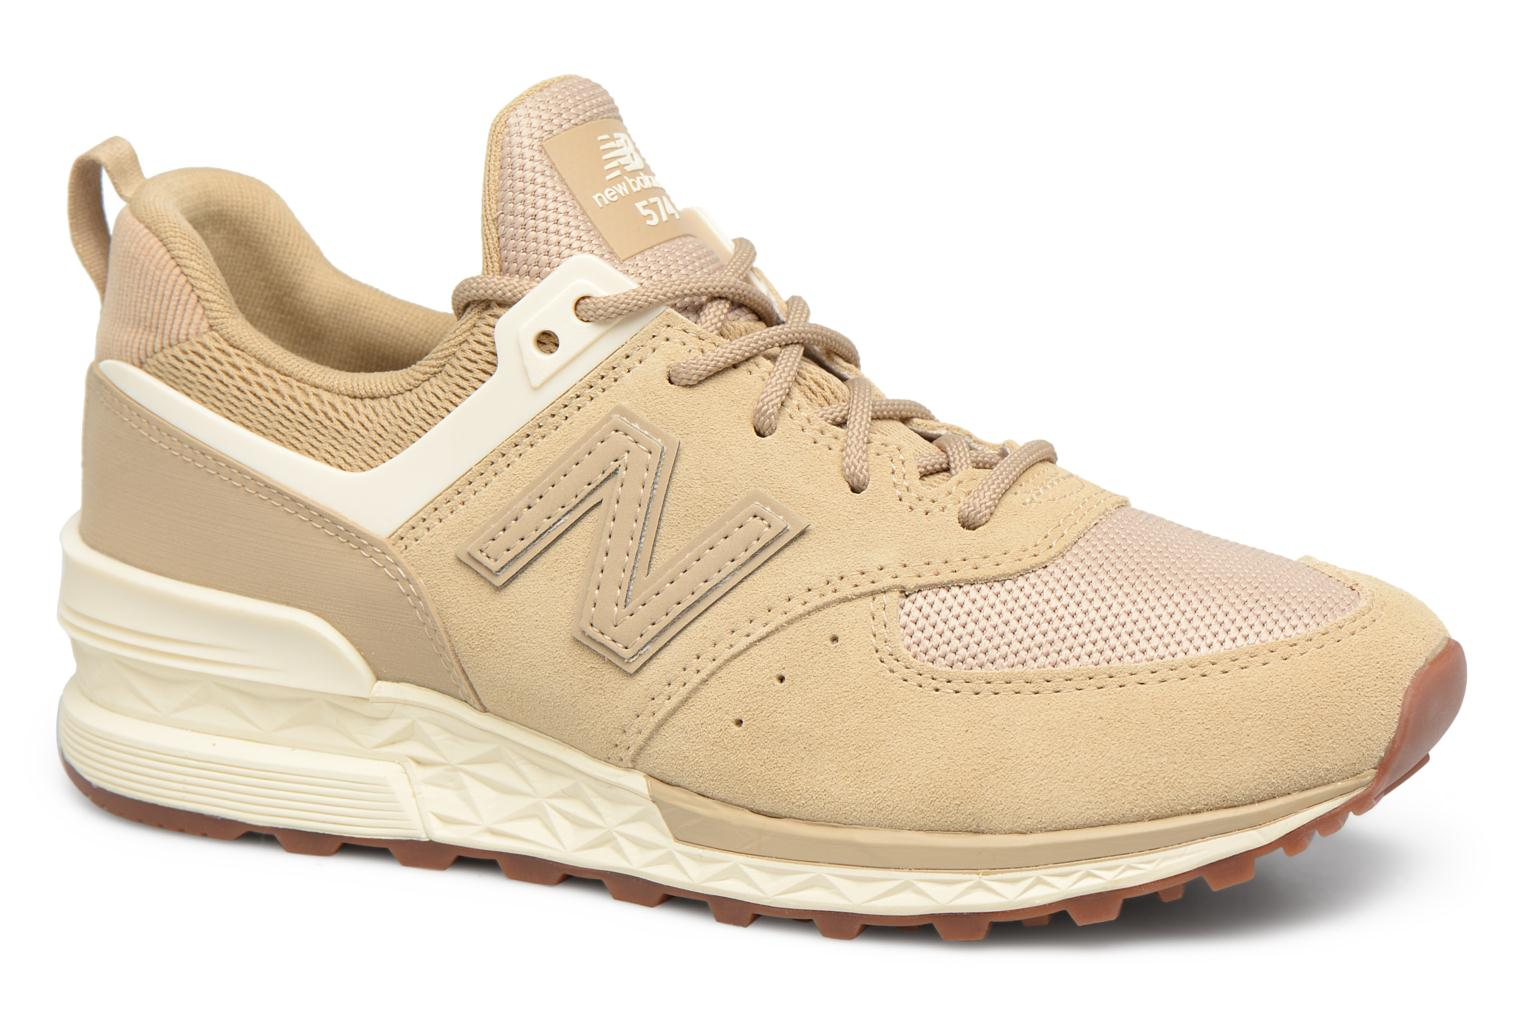 Marques Chaussure femme New Balance femme WS574 Incense